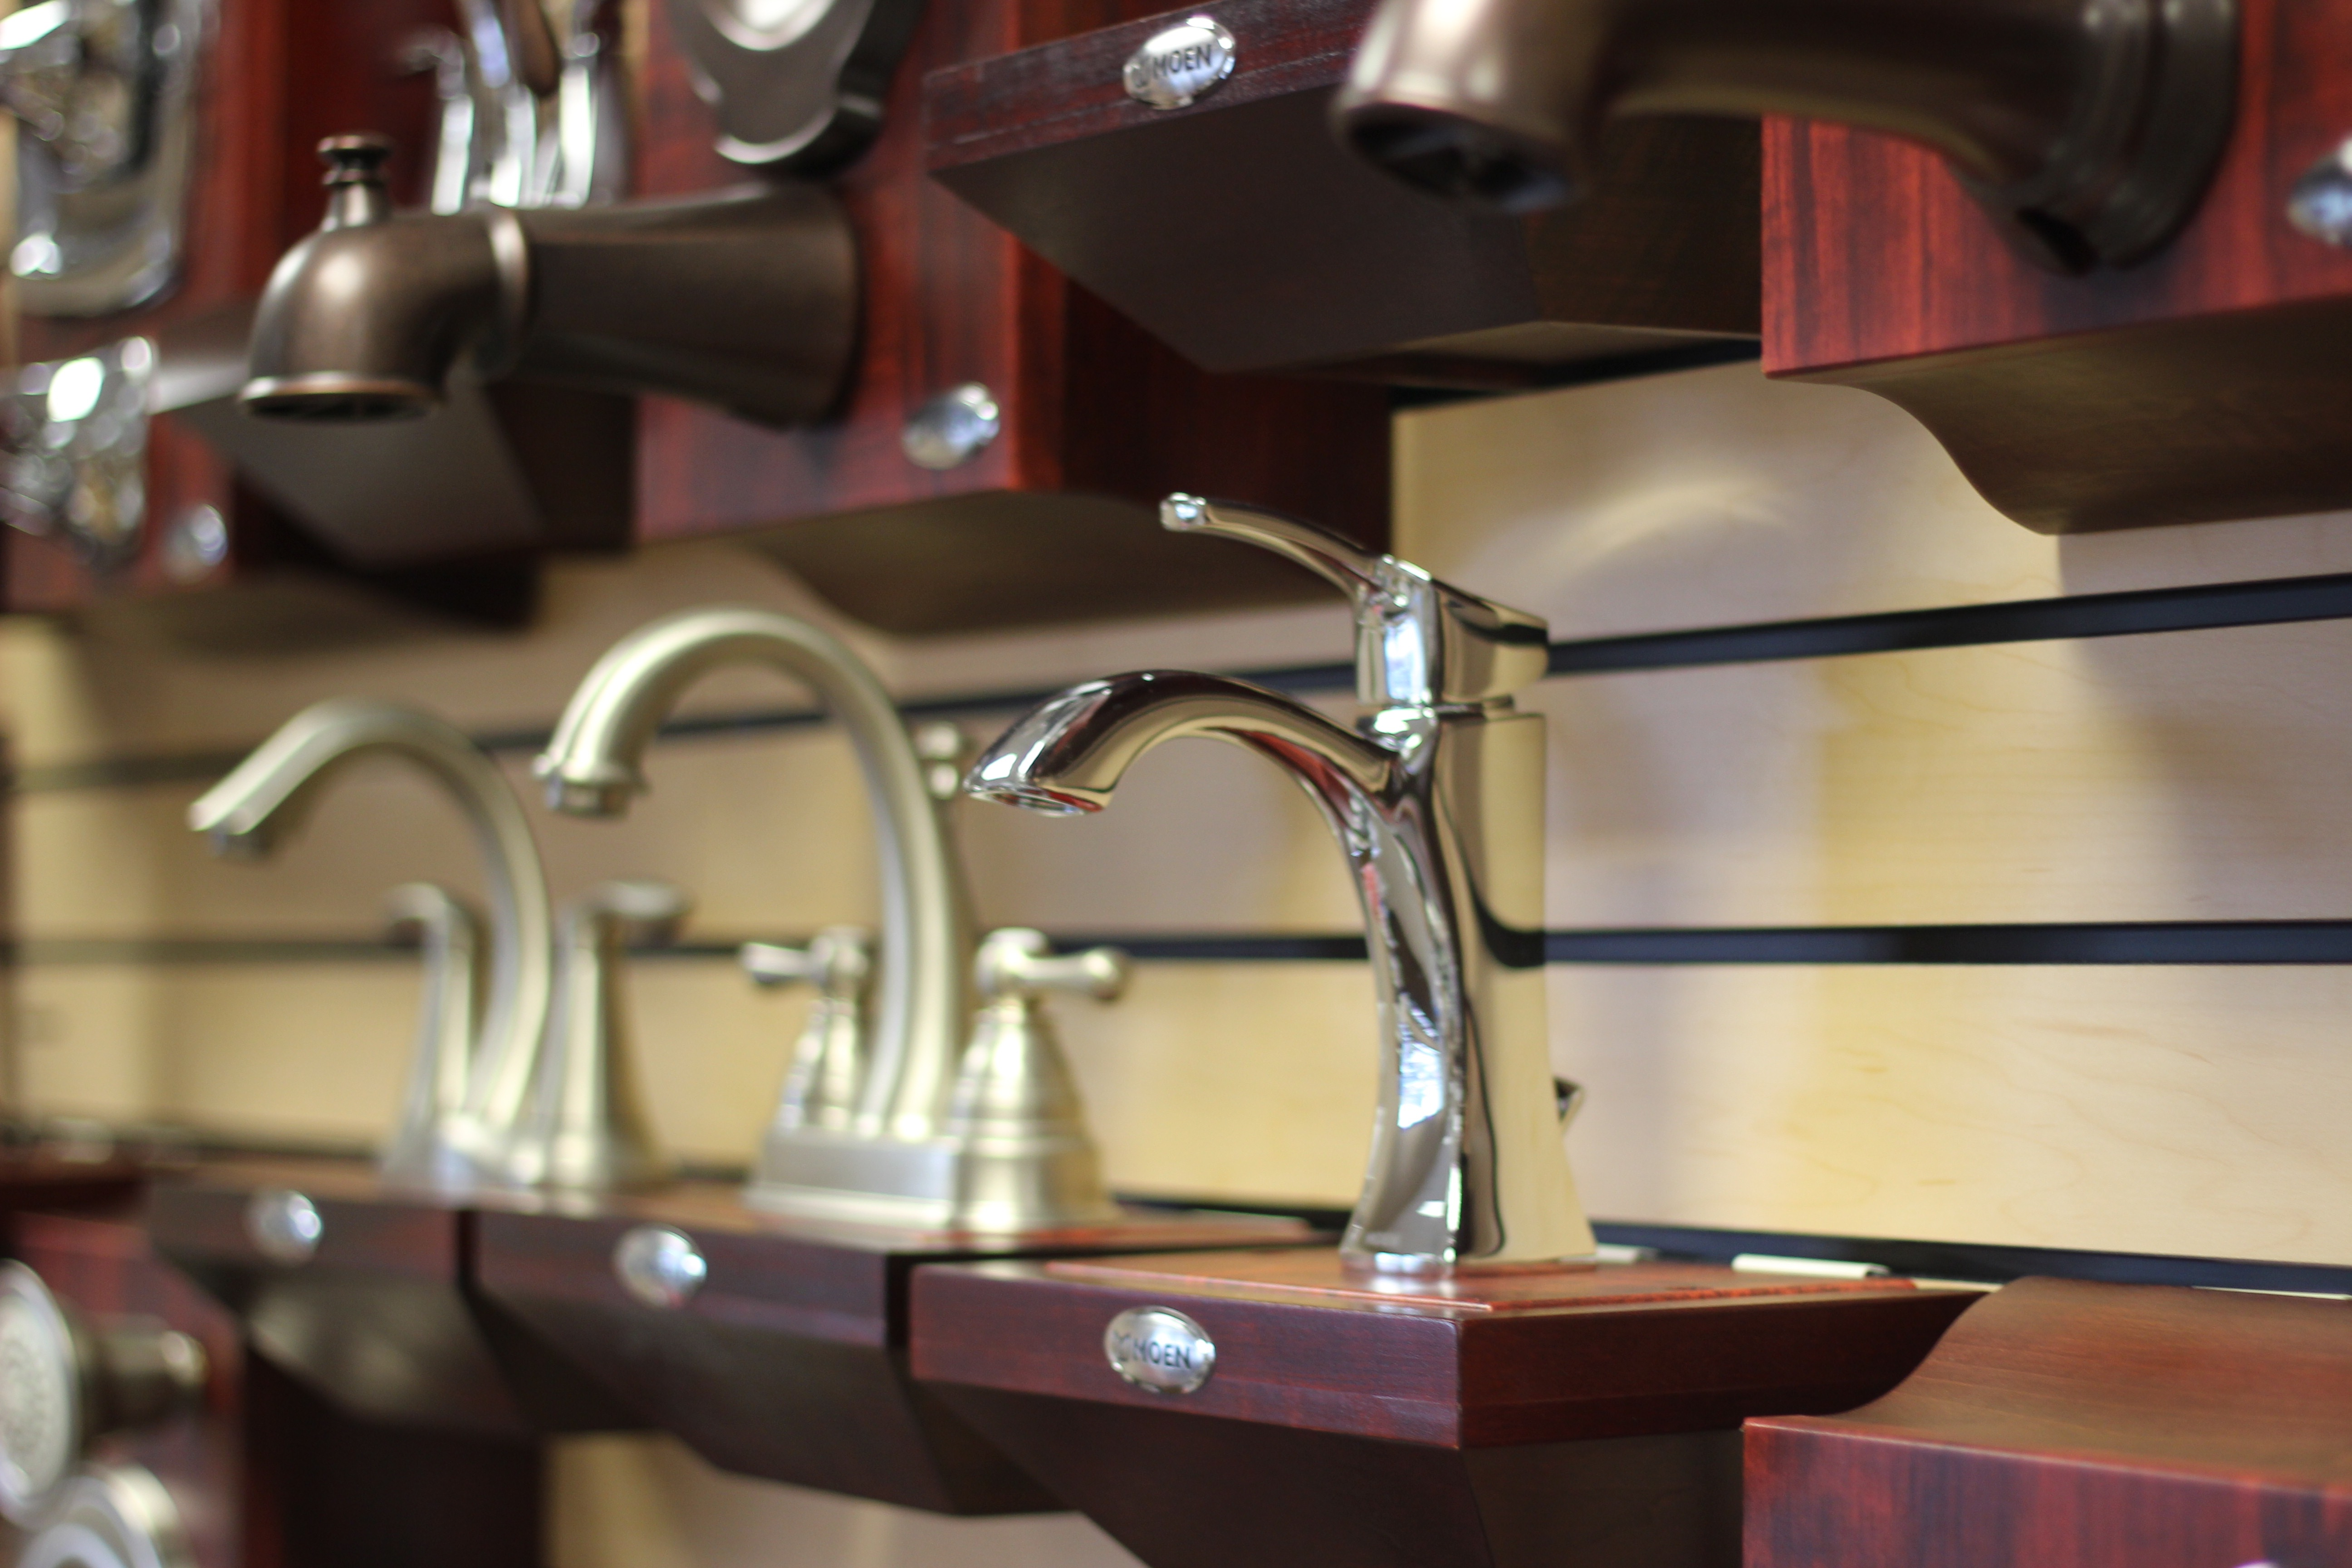 This is a photo of faucets on display at the Van's Plumbing & Electric showroom in Lynden, WA.